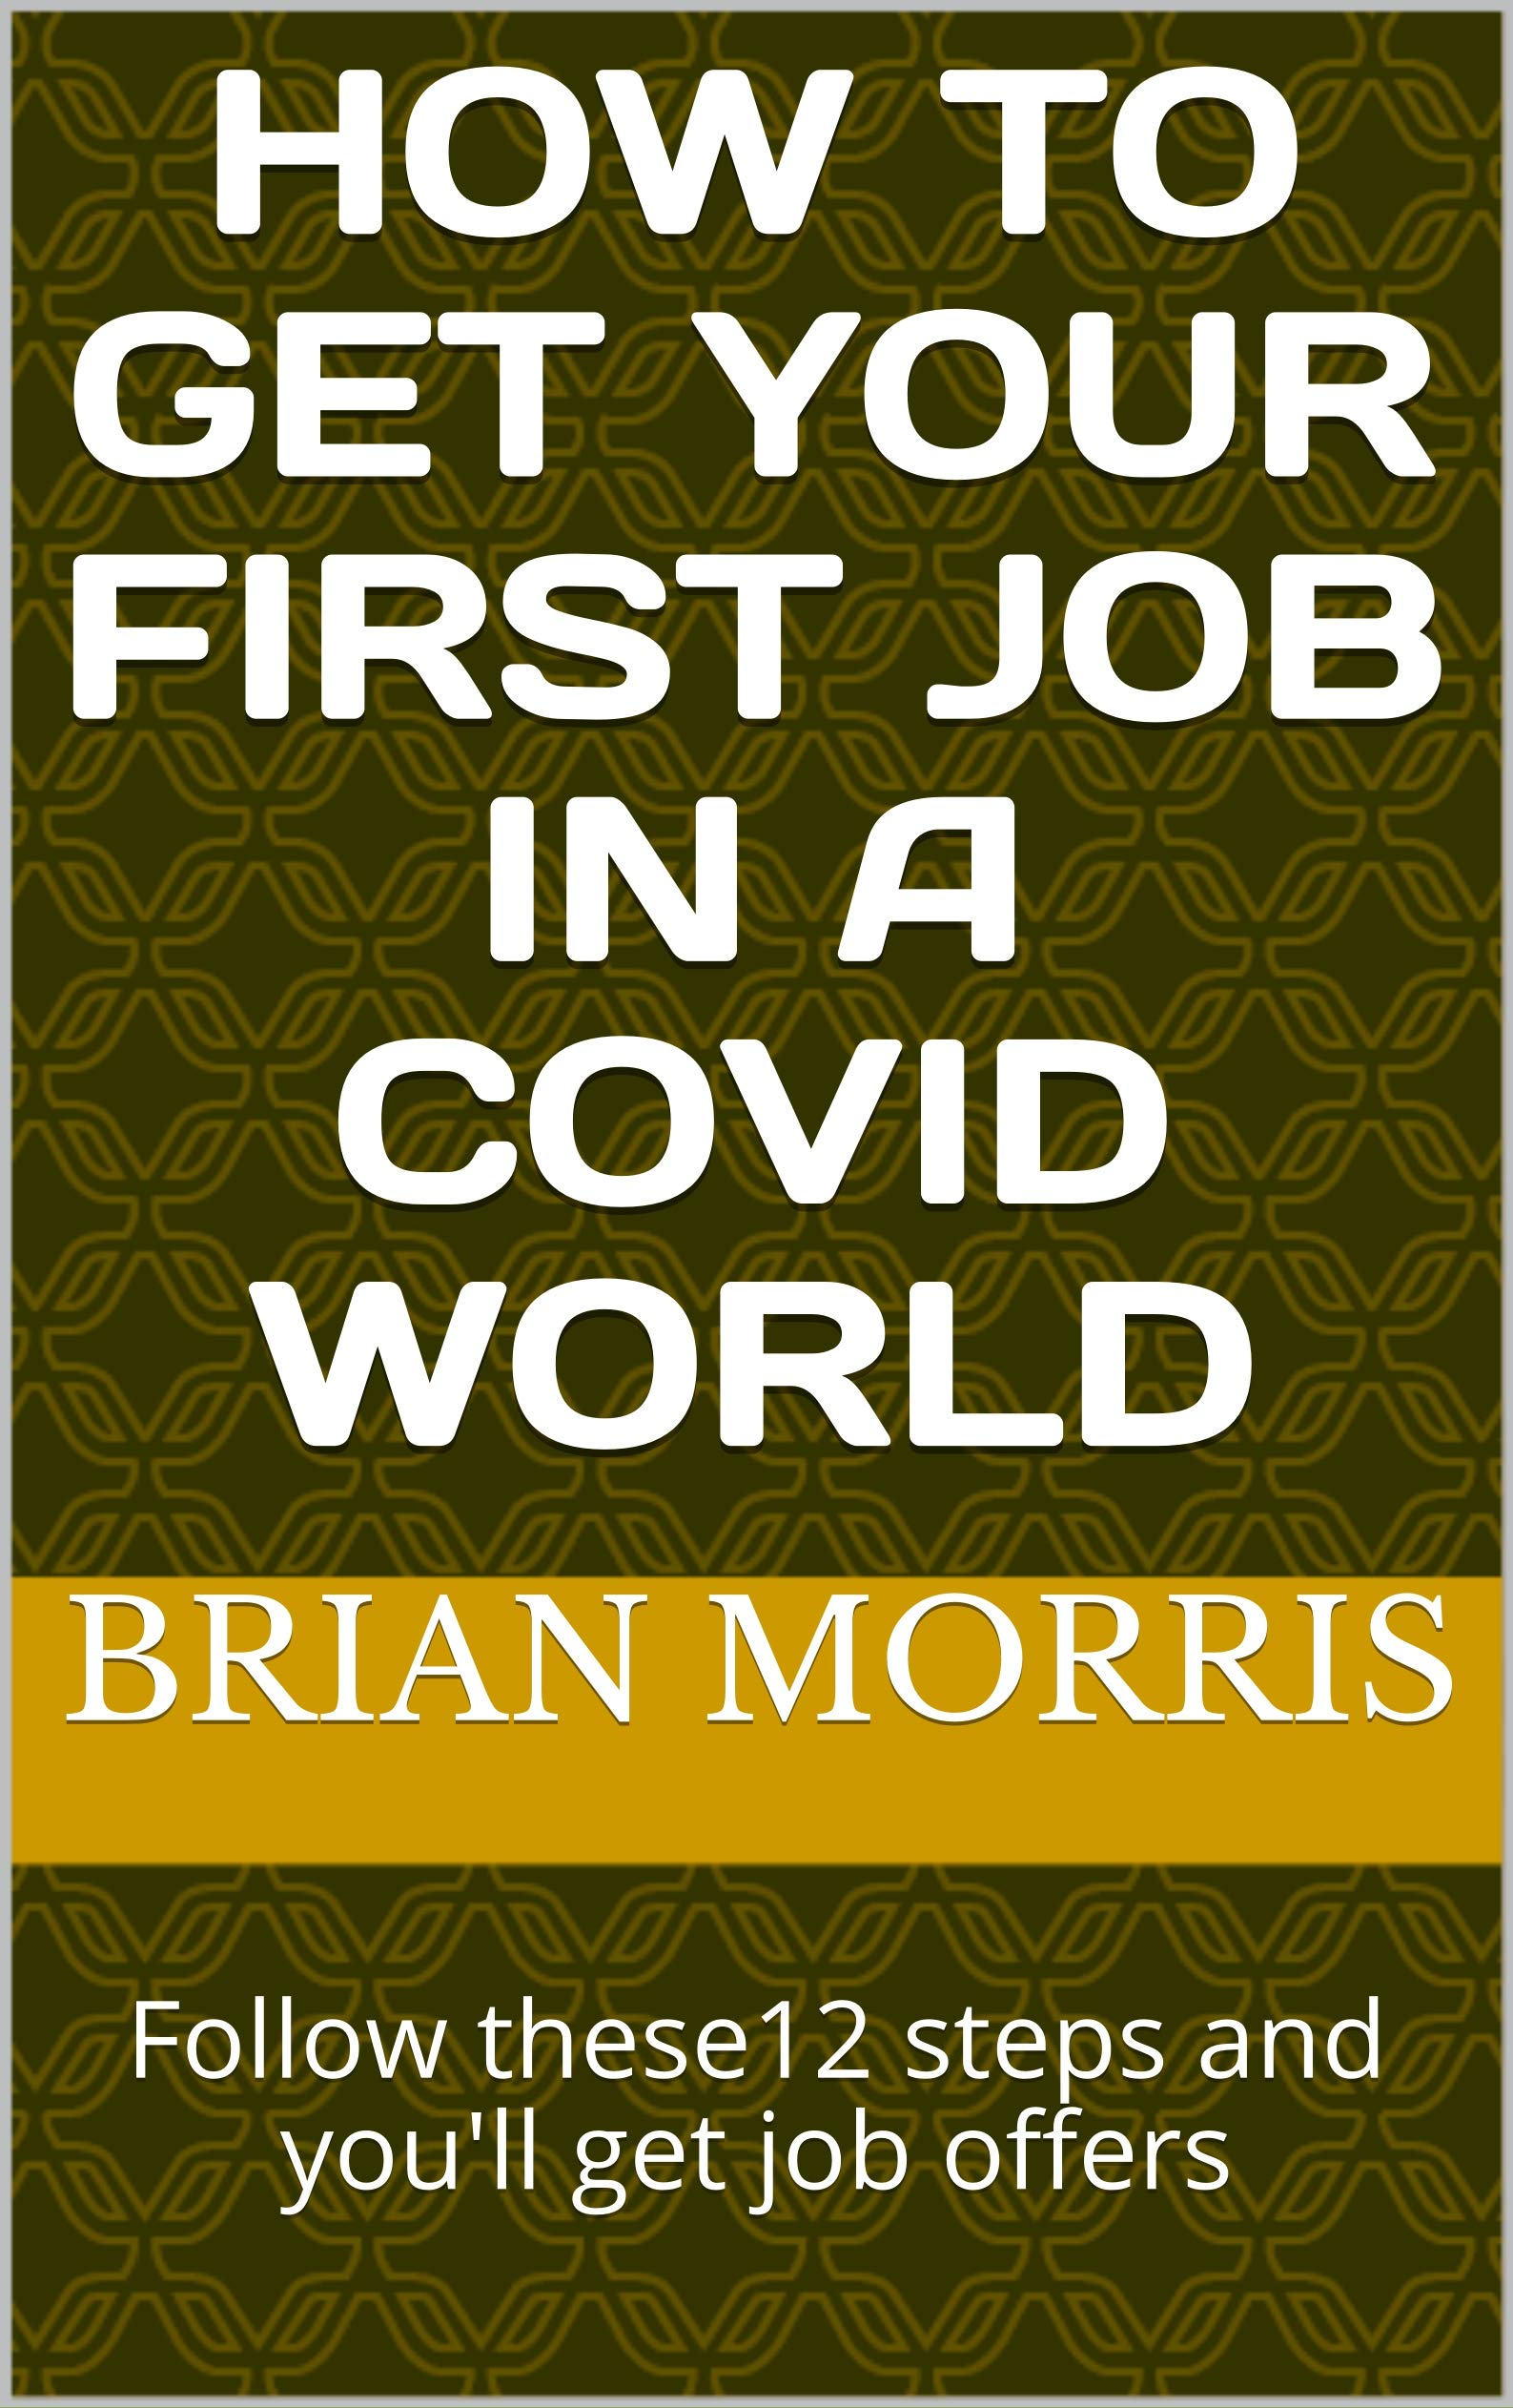 How To Get Your First Job In A Covid World: Follow these12 steps and you'll get job offers